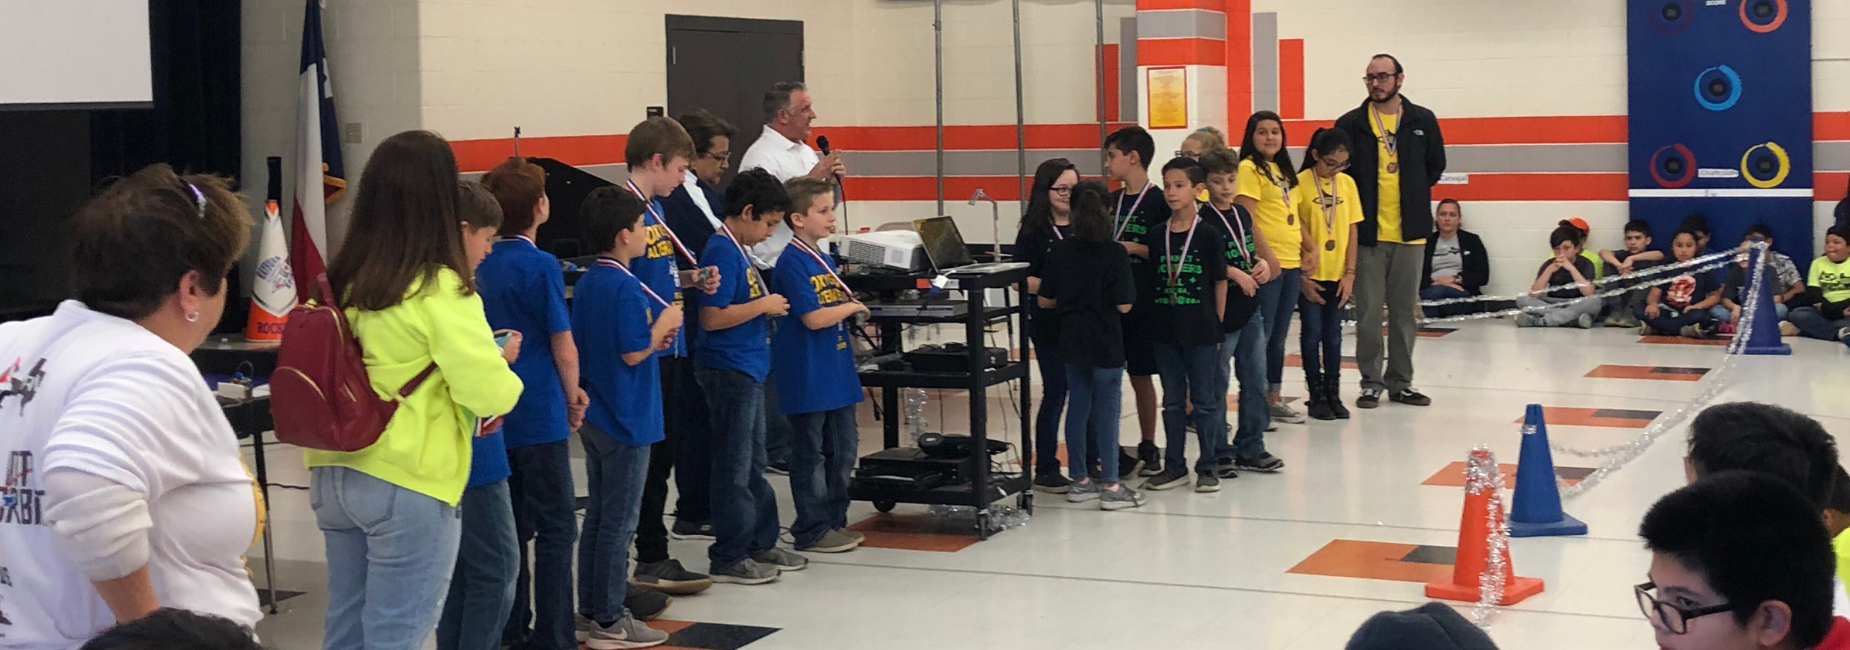 Milam wins 1st and 2nd at Robotics Scrimmage